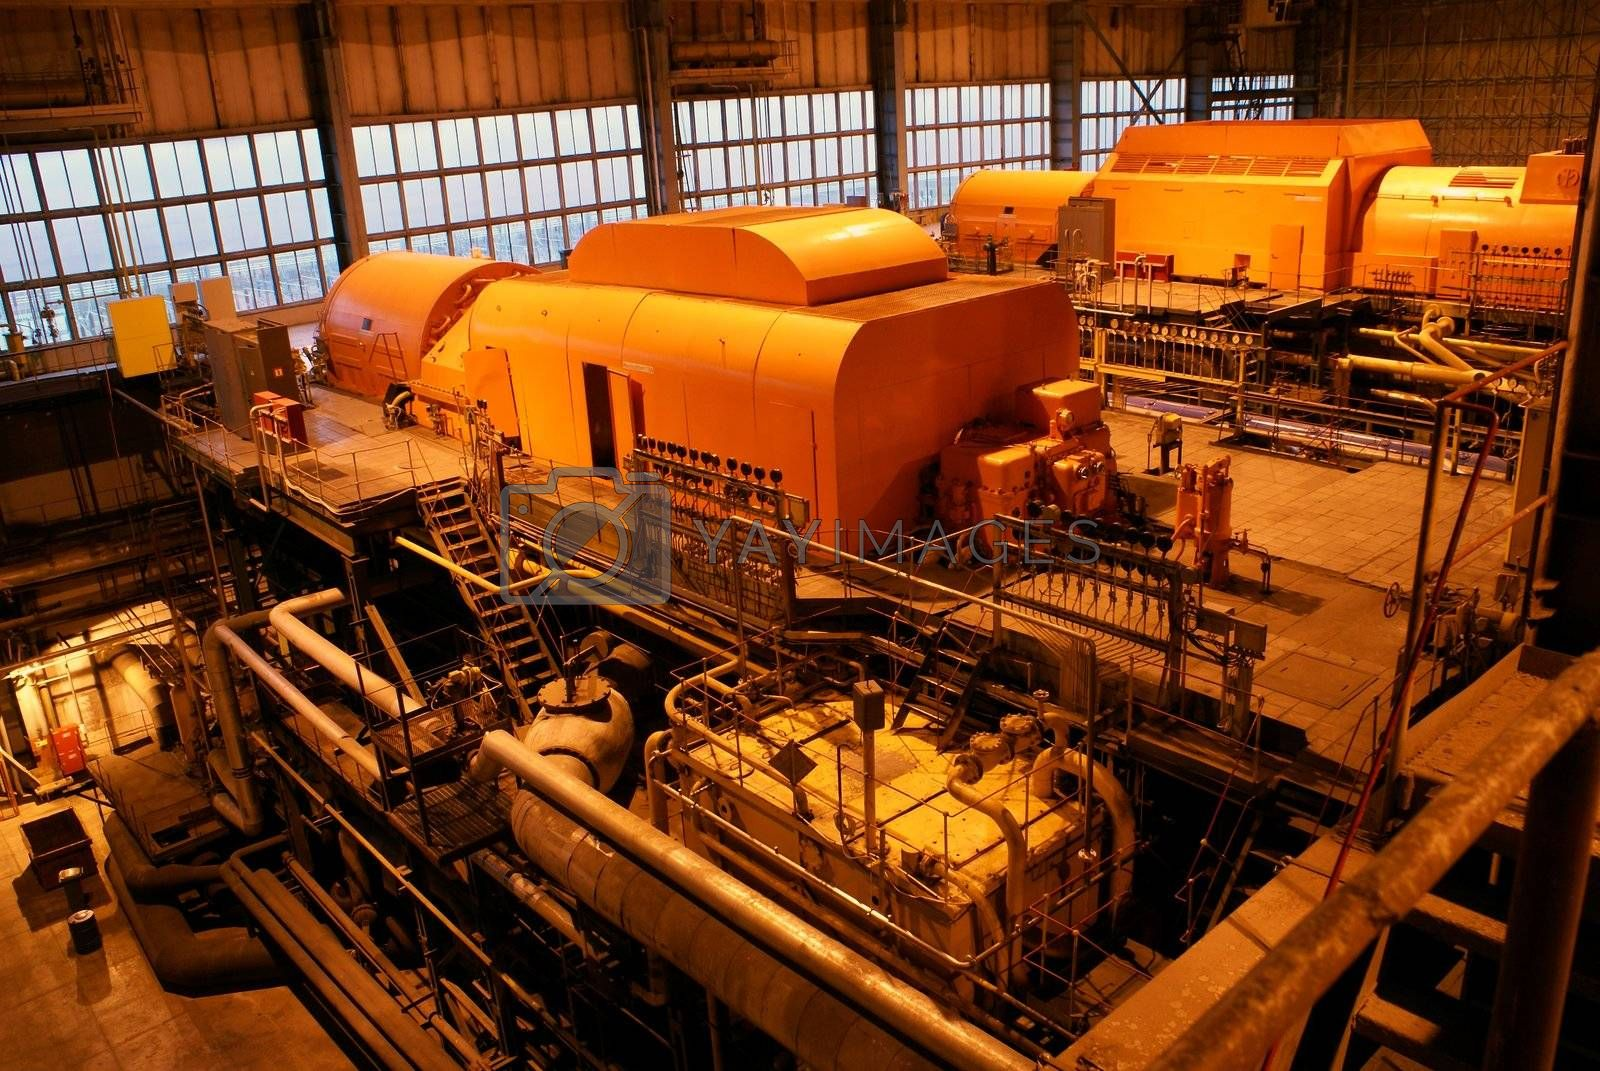 steam turbine and different size and shaped pipes at a power plant